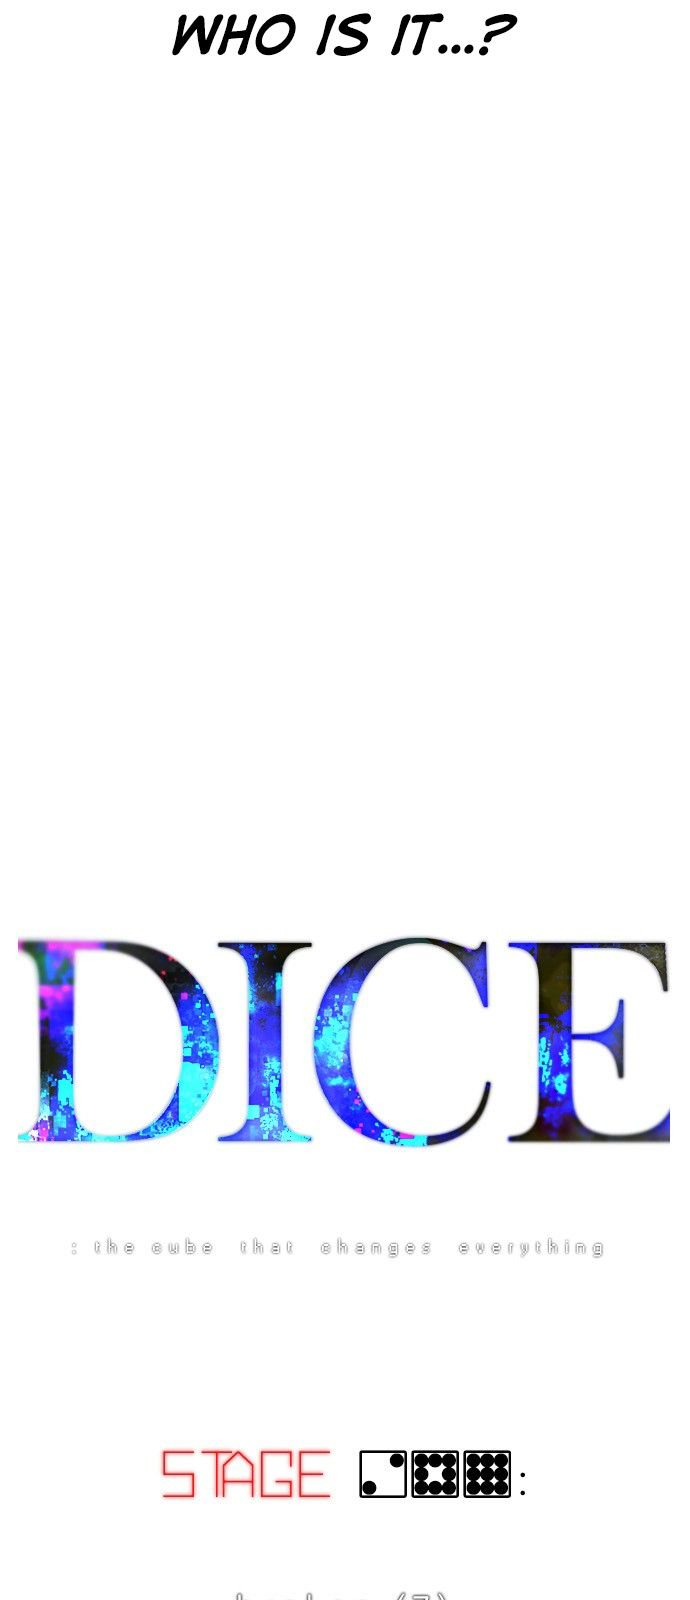 dice_the_cube_that_changes_everything_289_4